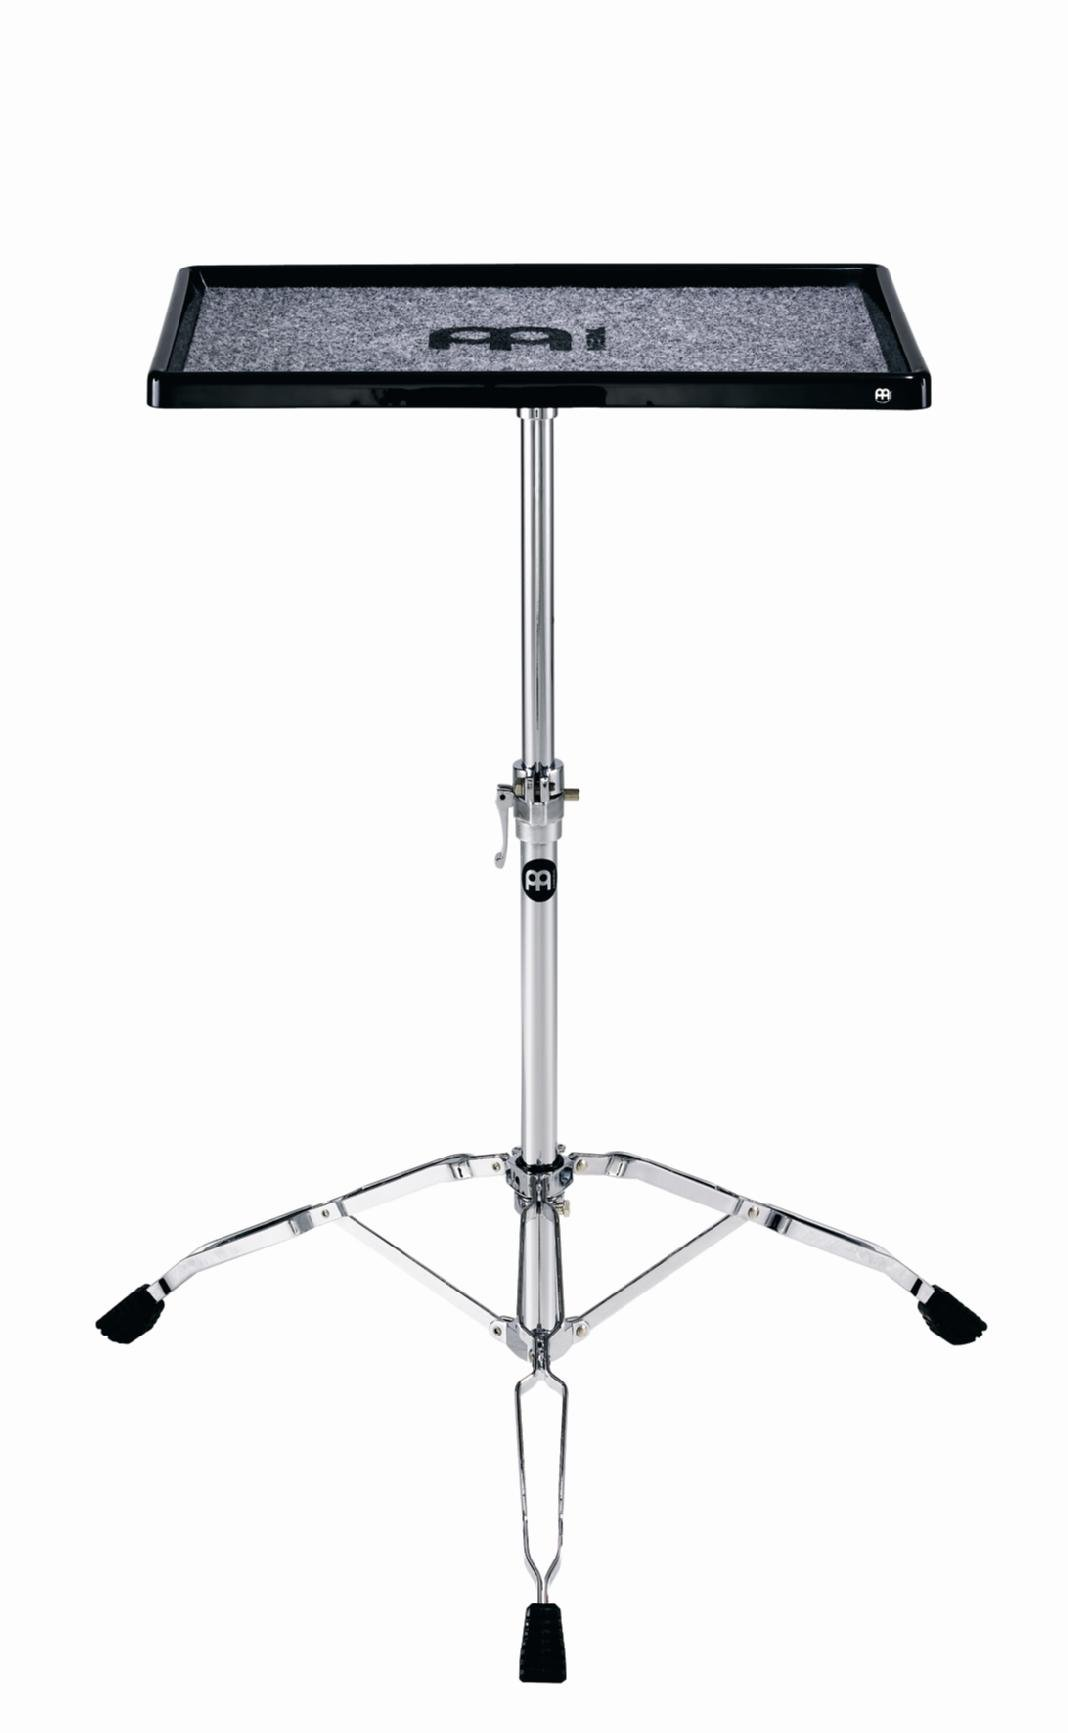 Meinl Percussion Table Stand with Double Braced Tripod Legs - NOT MADE IN CHINA - Fully Height Adjustable, 2-YEAR WARRANTY TMPTS